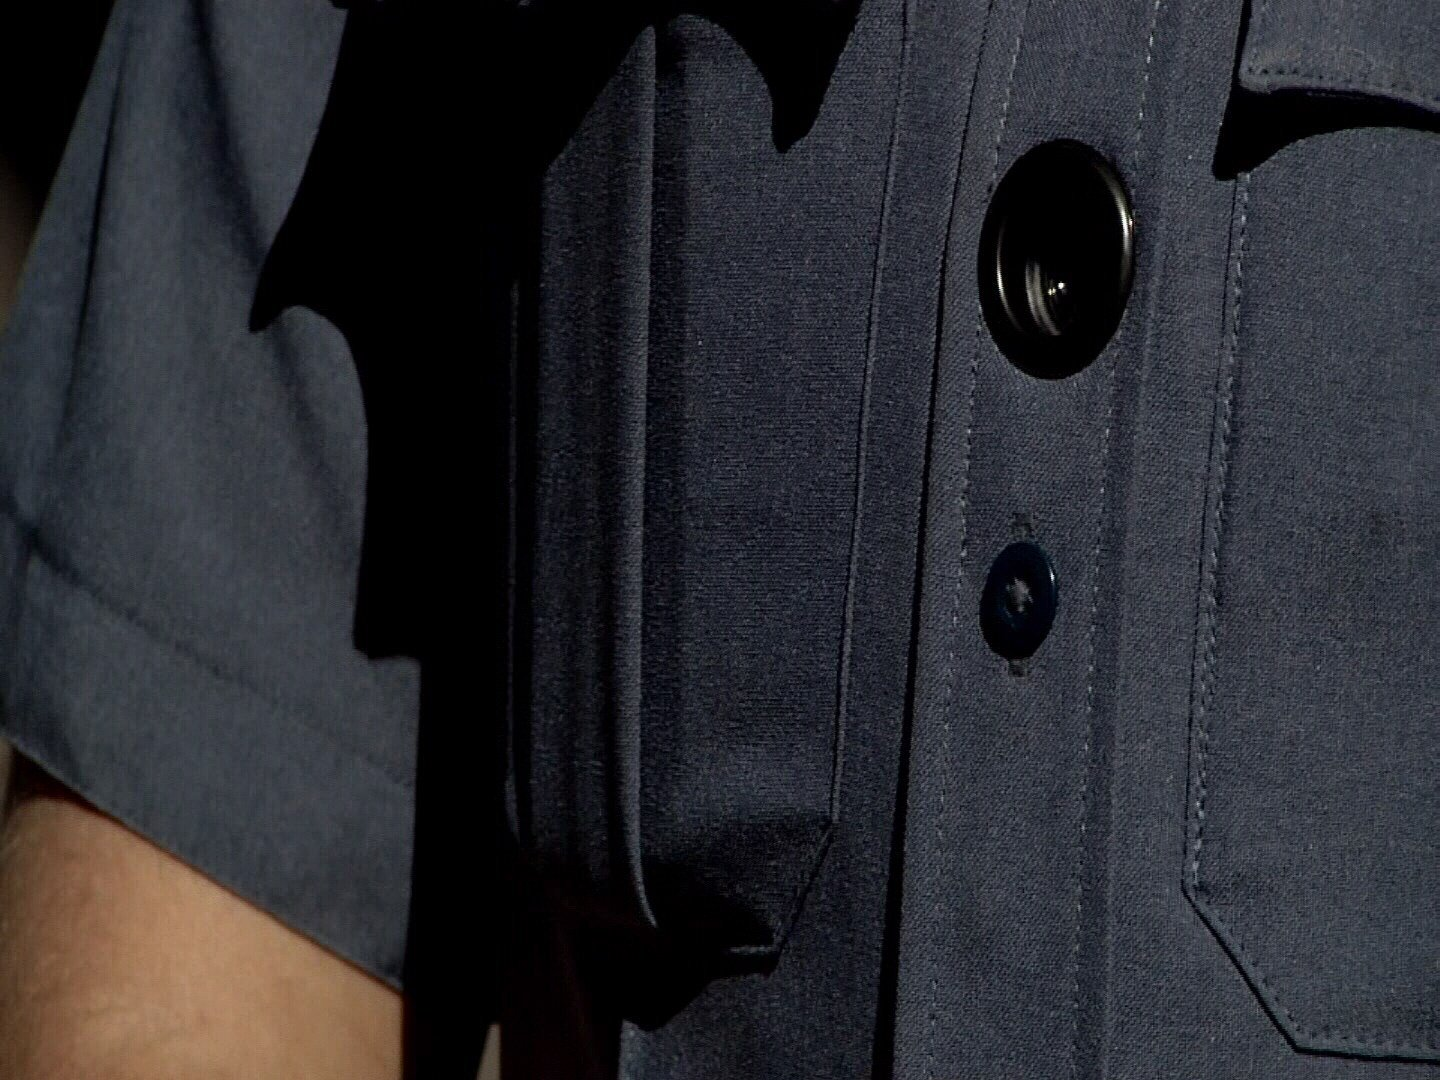 Colorado Springs Police Officers have worn body cameras for a full year now